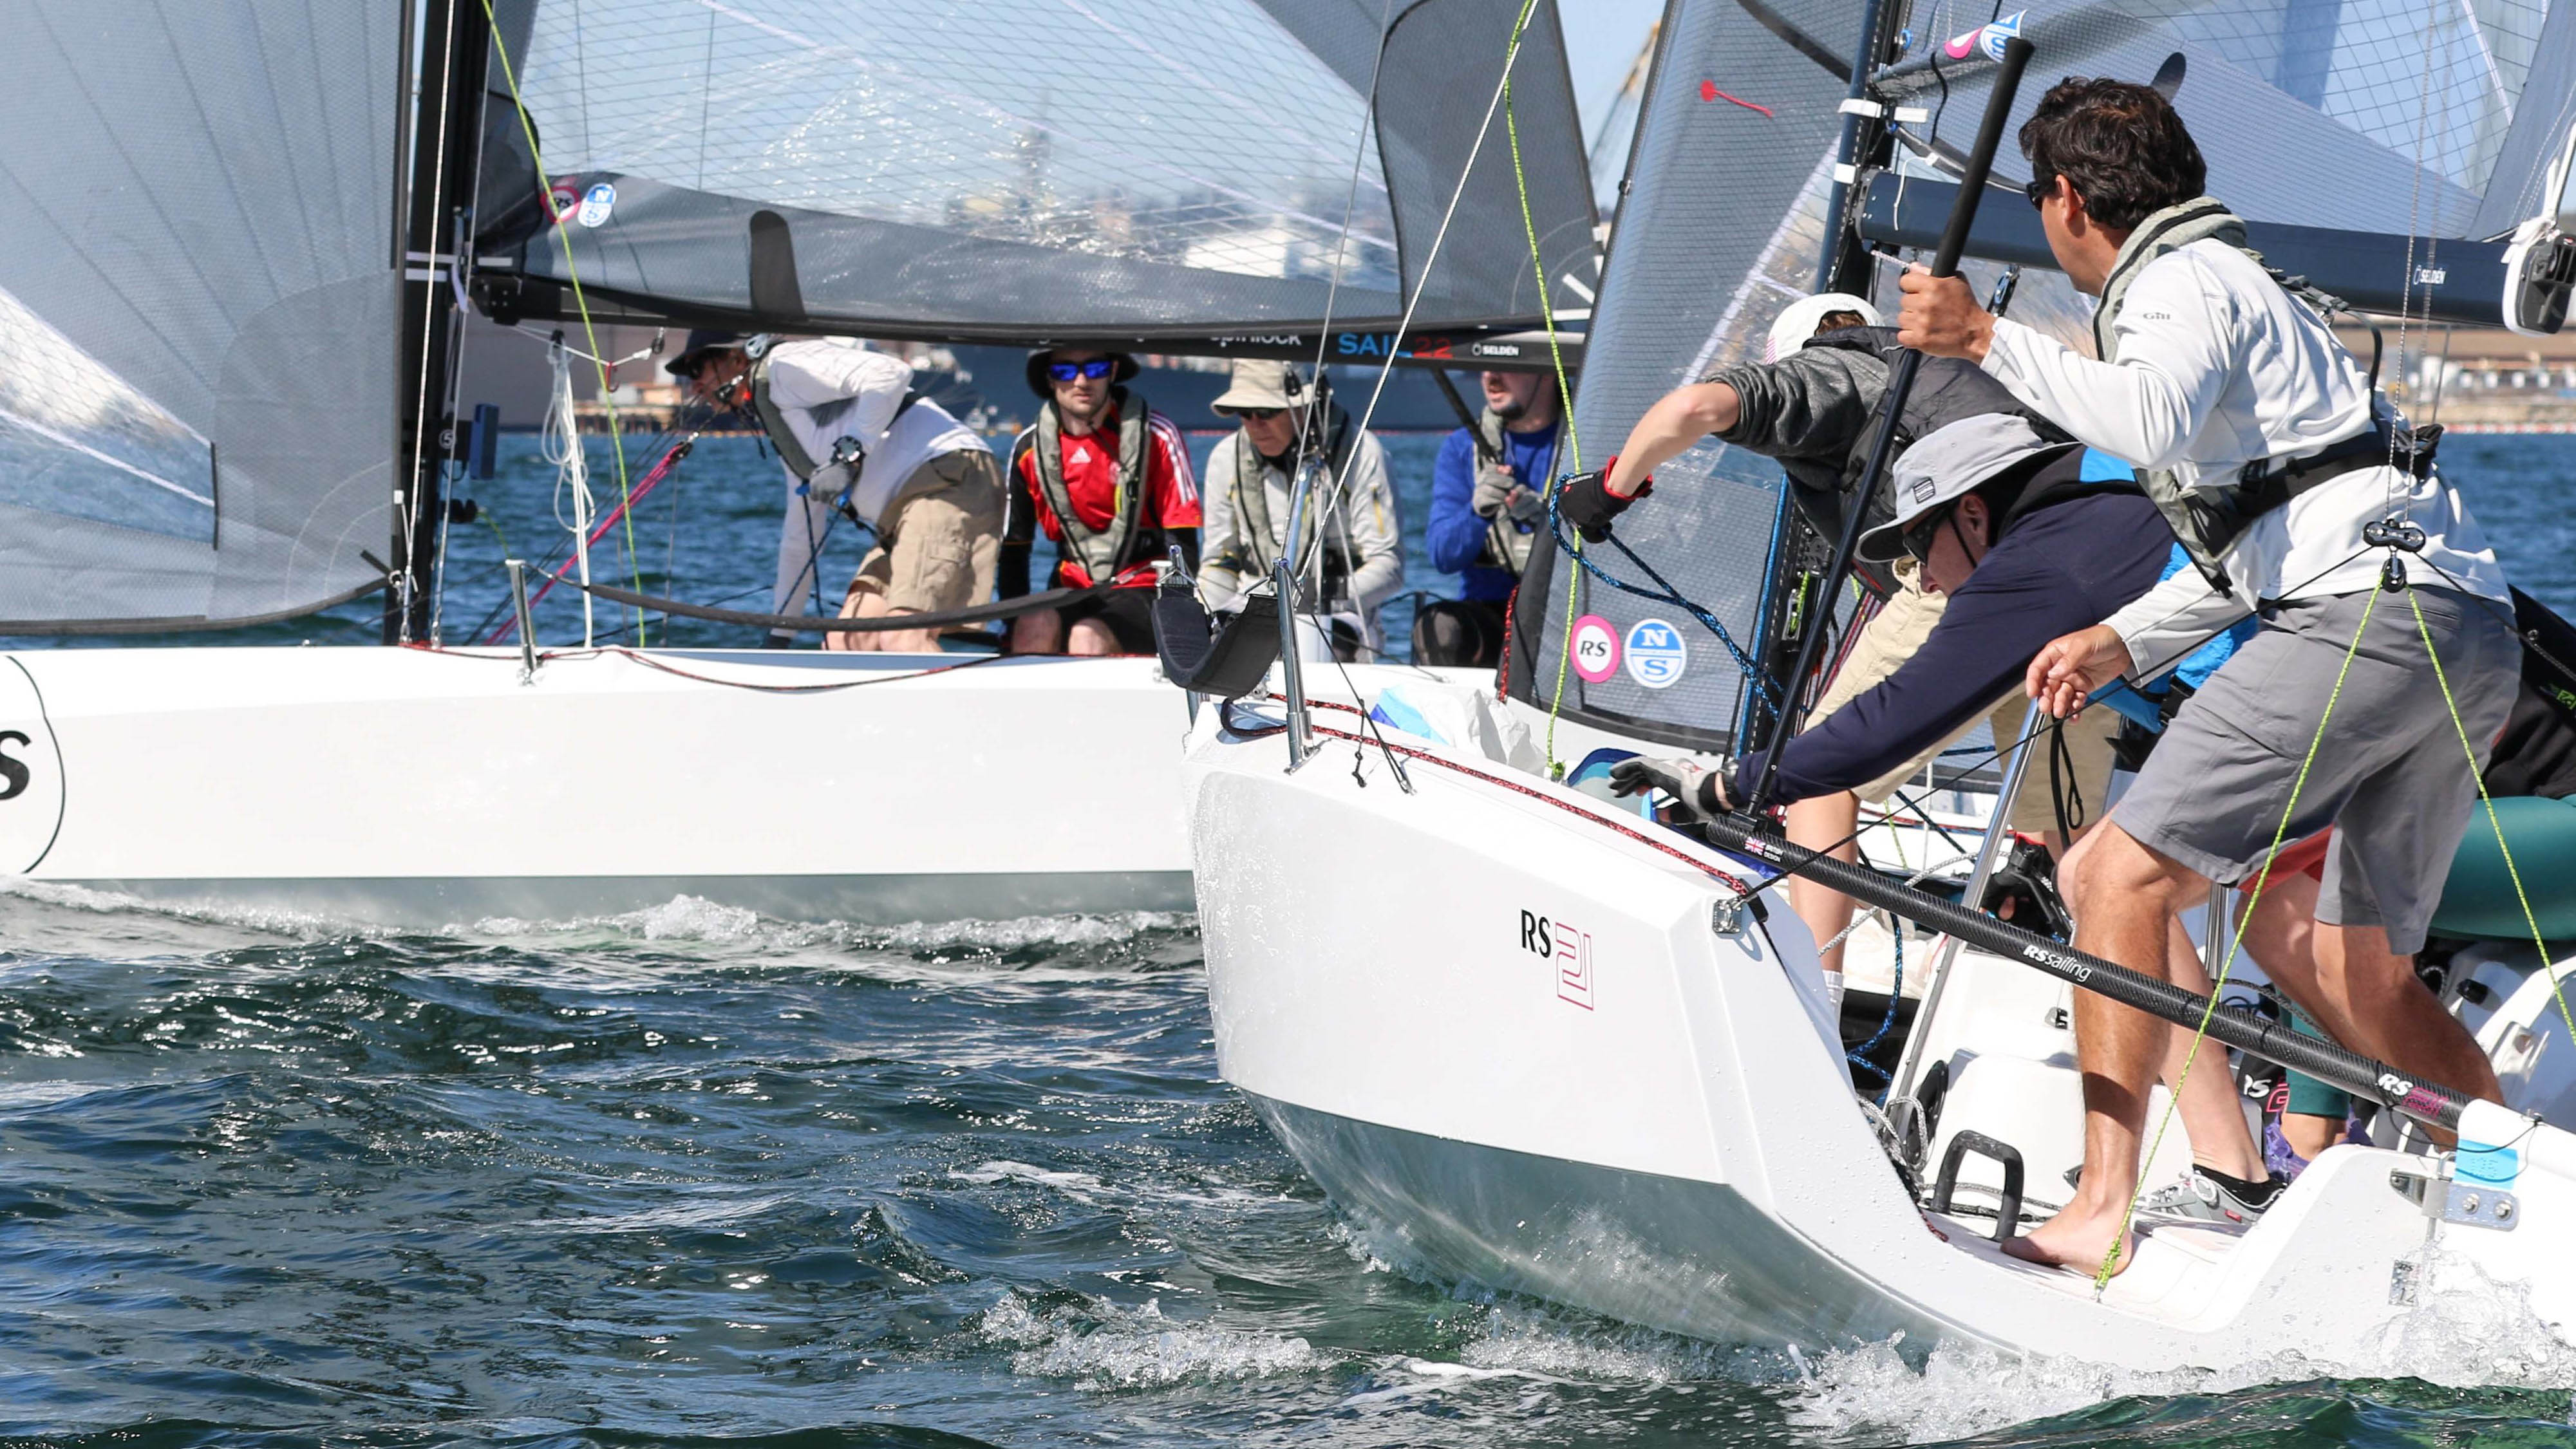 RS21MatchRace 24.03